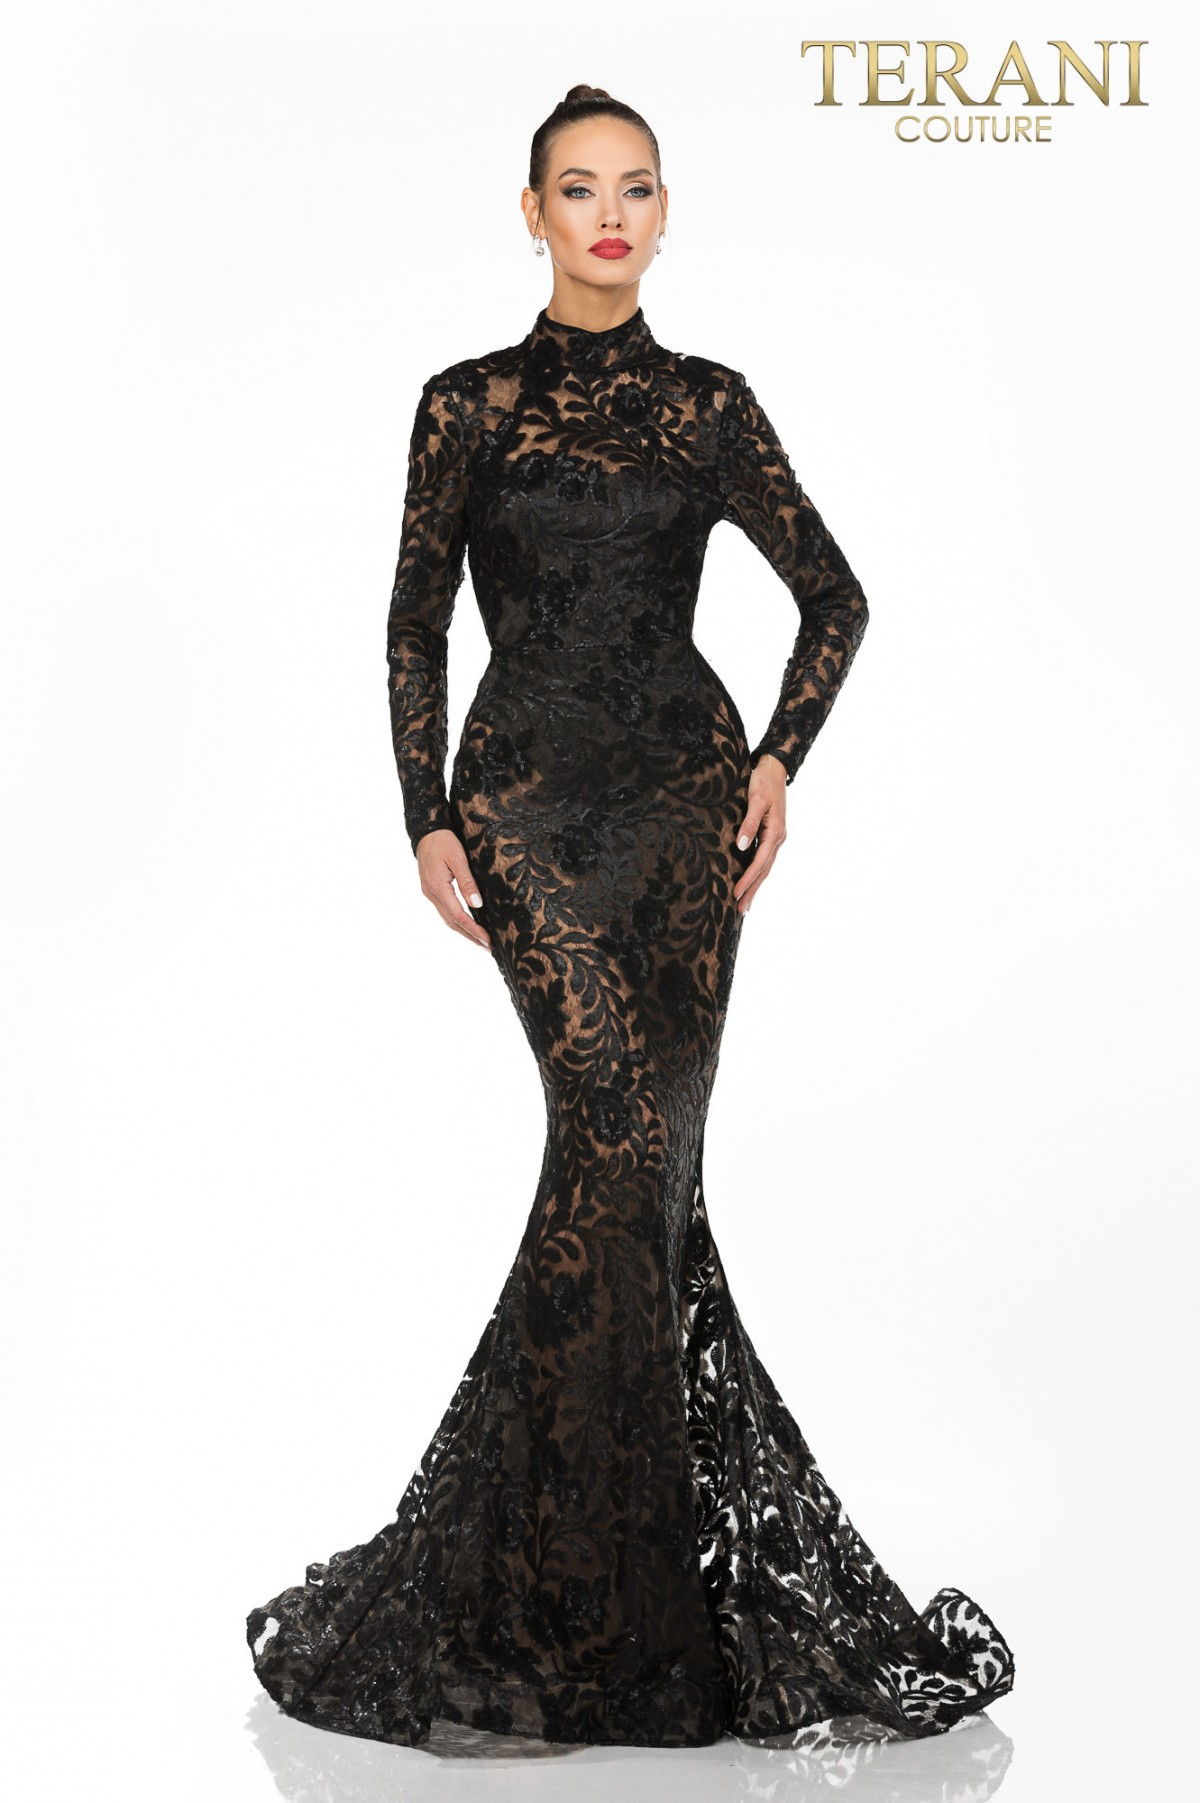 Terani Couture lace Evening gown w/ Bodysuit